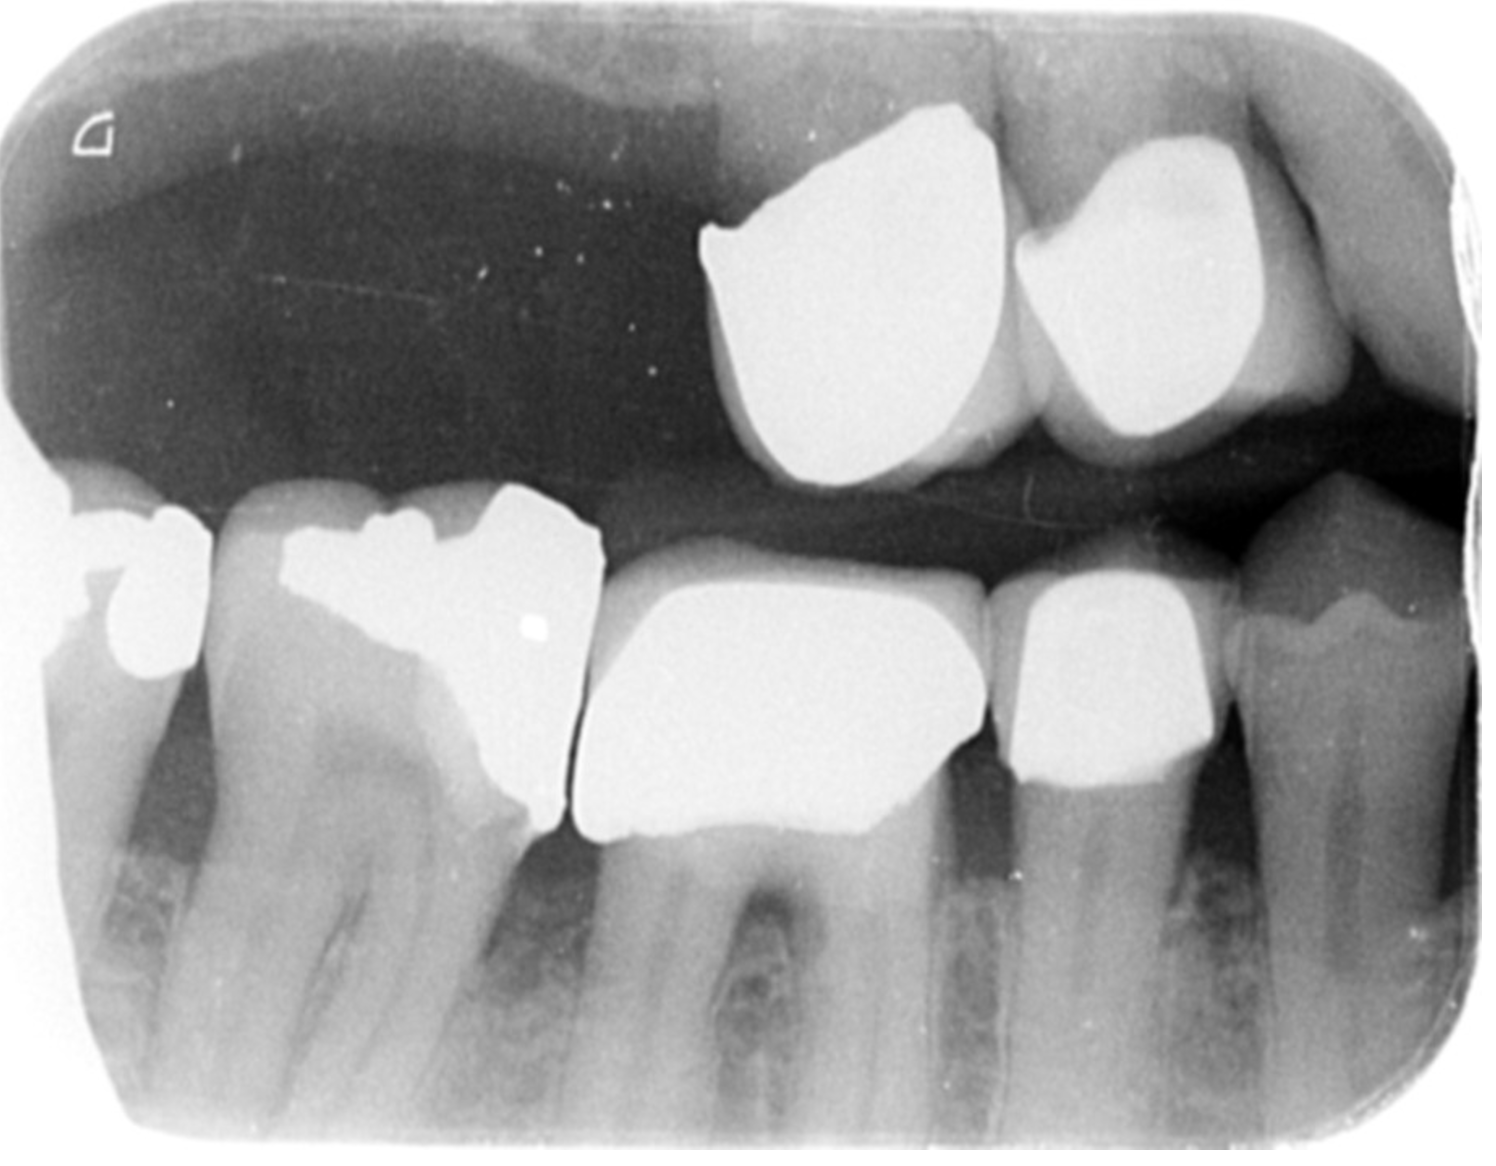 RHS BW. Grade – 2, incompletely scanned in LR8 area.